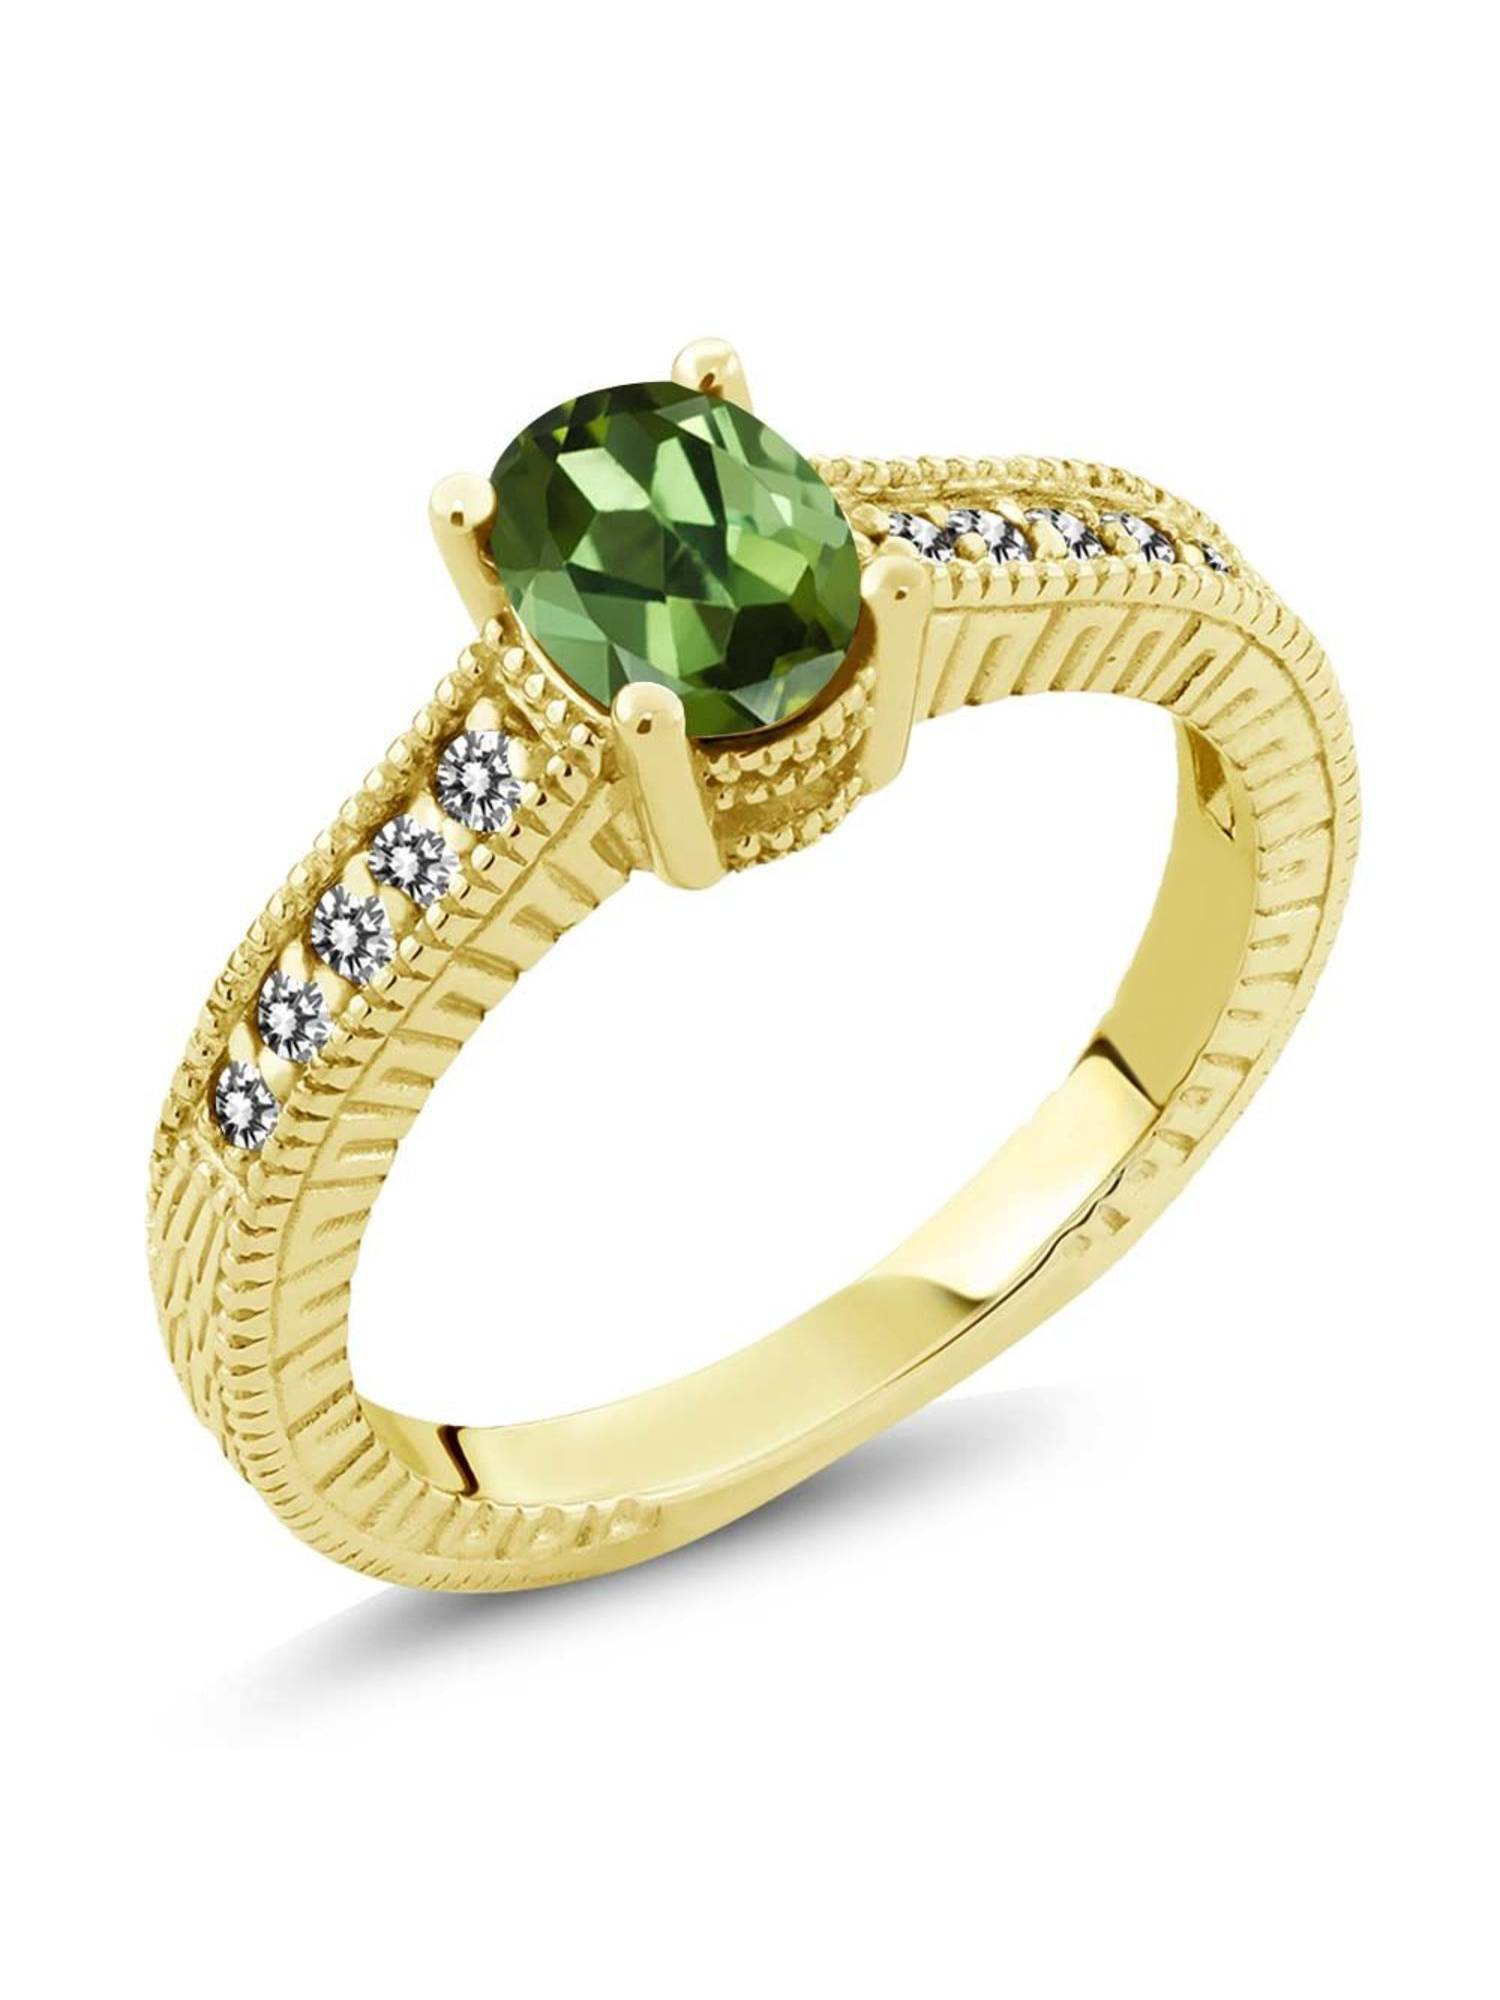 1.18 Ct Oval Green Tourmaline White Diamond 18K Yellow Gold Plated Silver Ring by